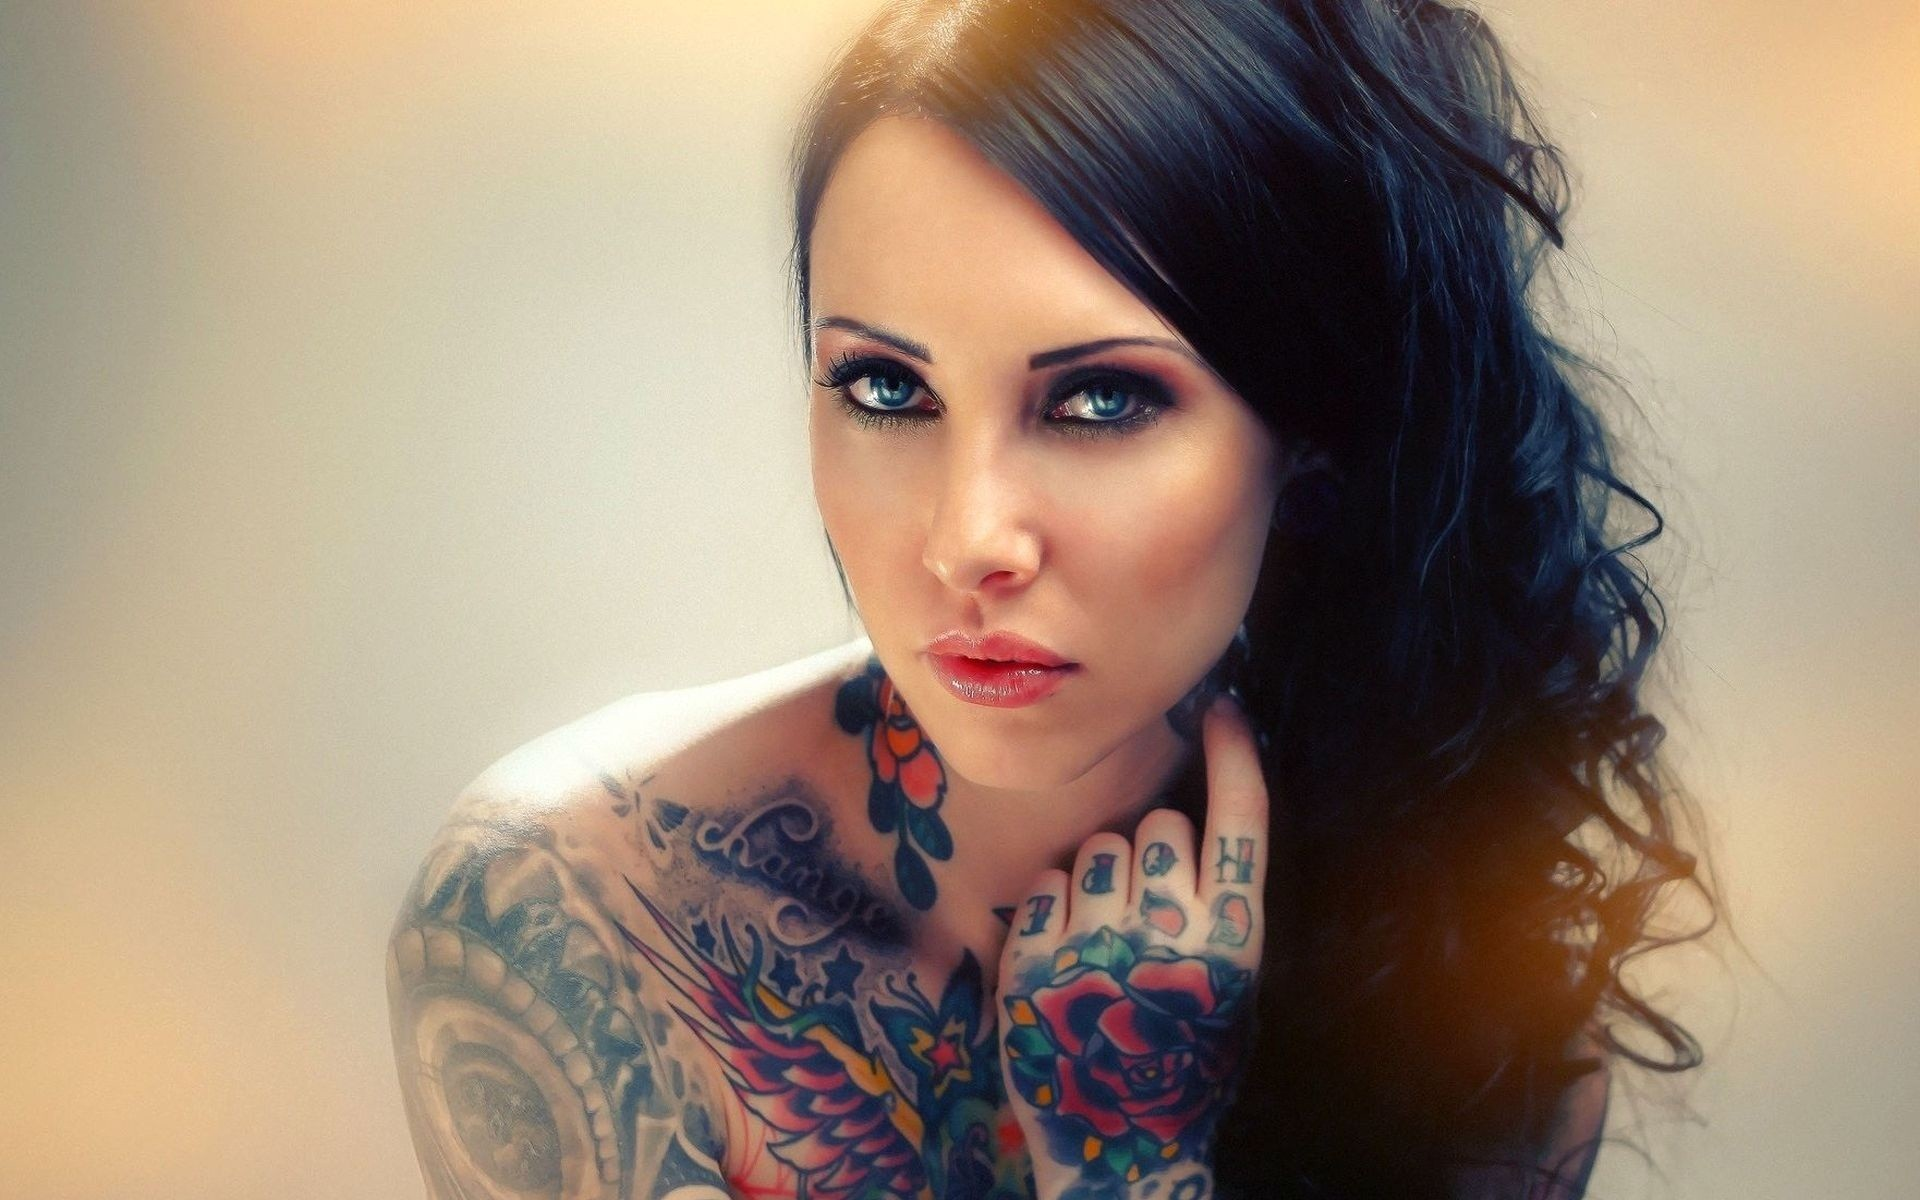 Appealing Tattoos for Women 60